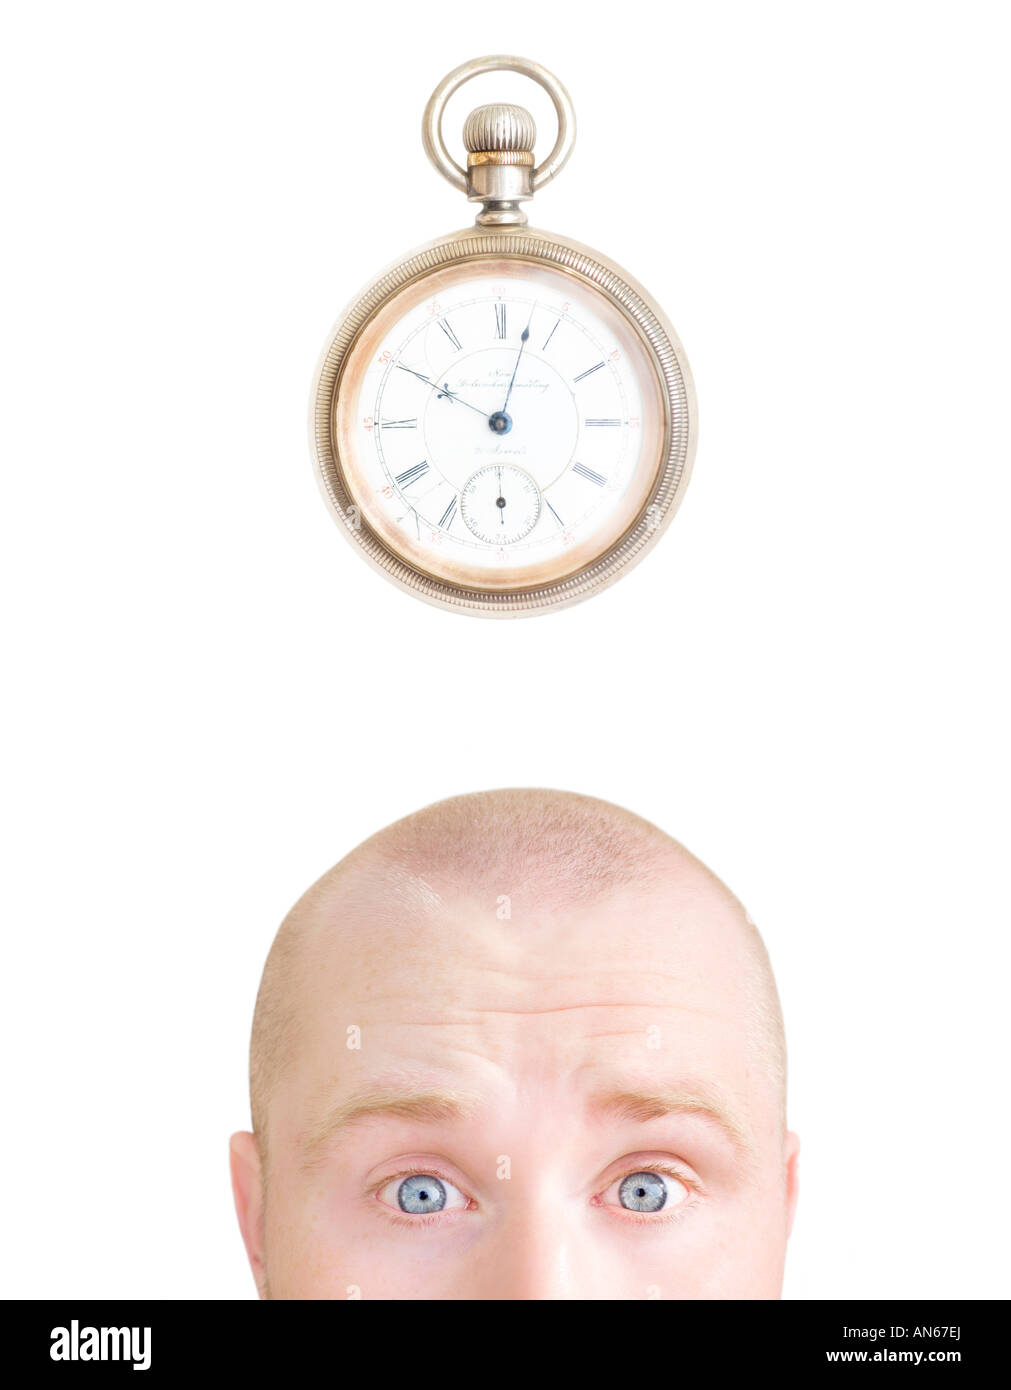 Part of a man's head and a stop watch - Stock Image